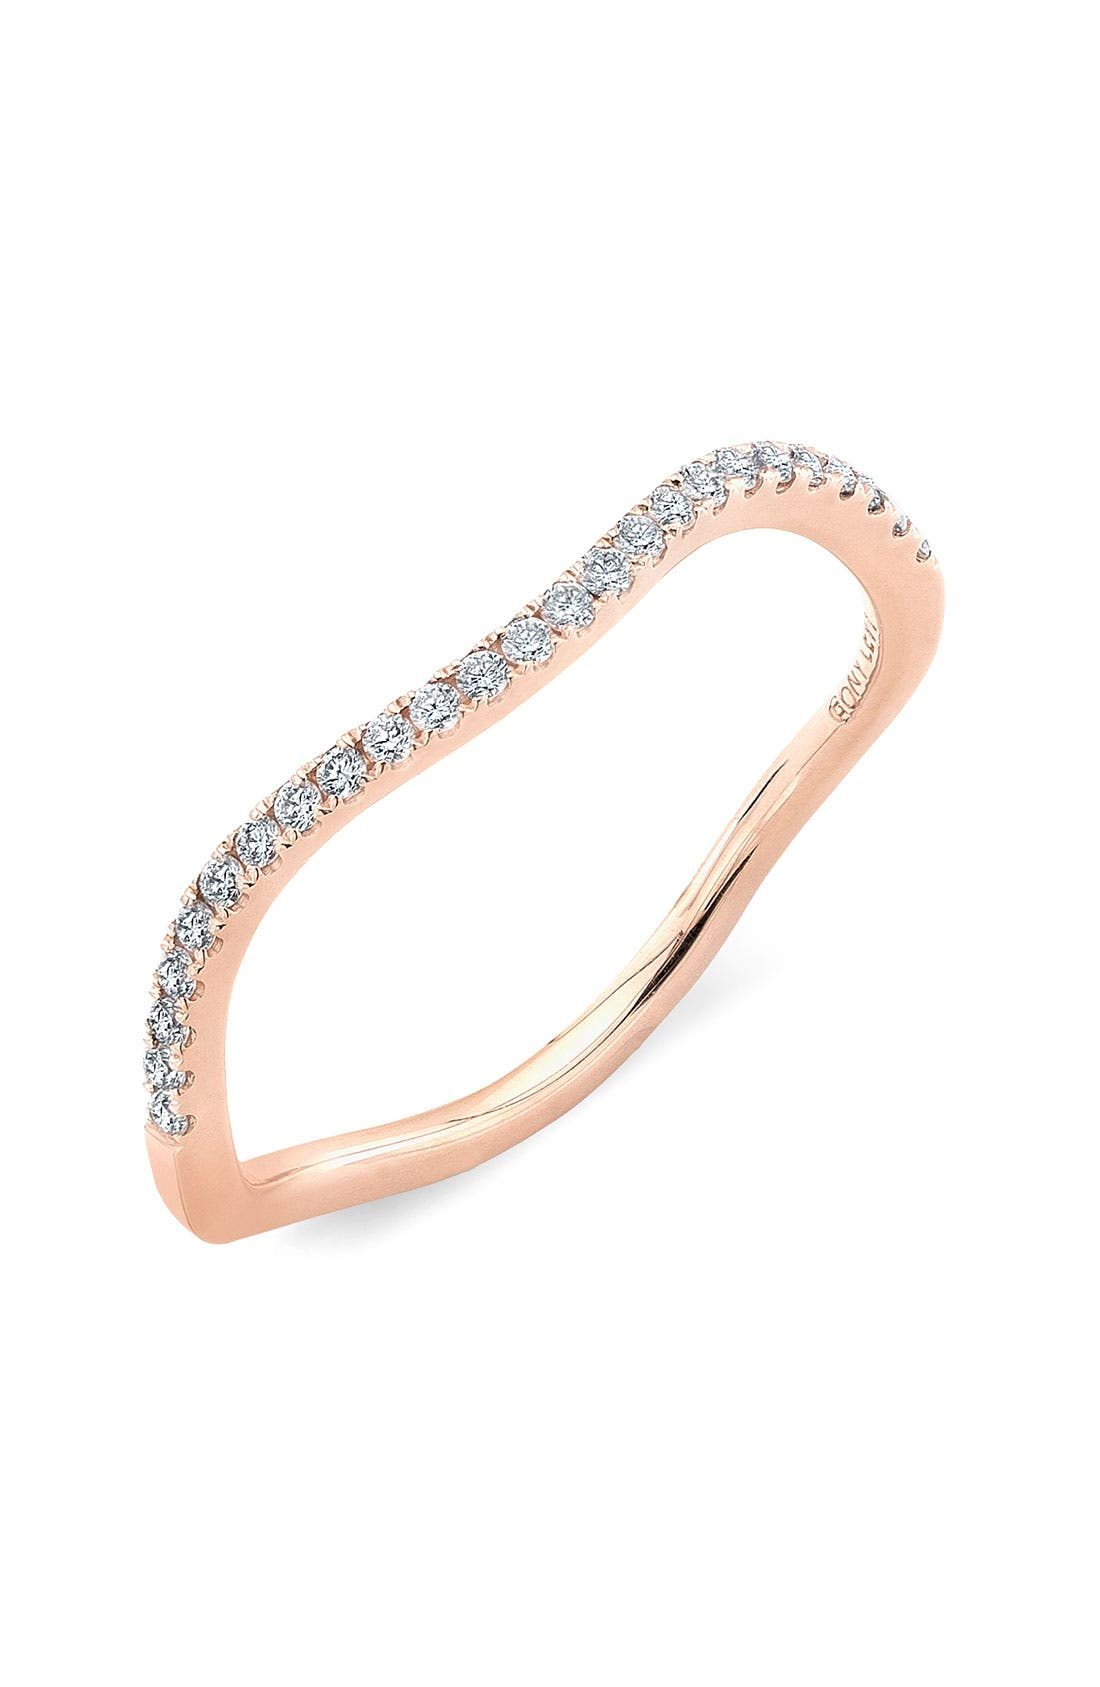 Main Image - Bony Levy Stackable Wavy Diamond Ring (Nordstrom Exclusive)